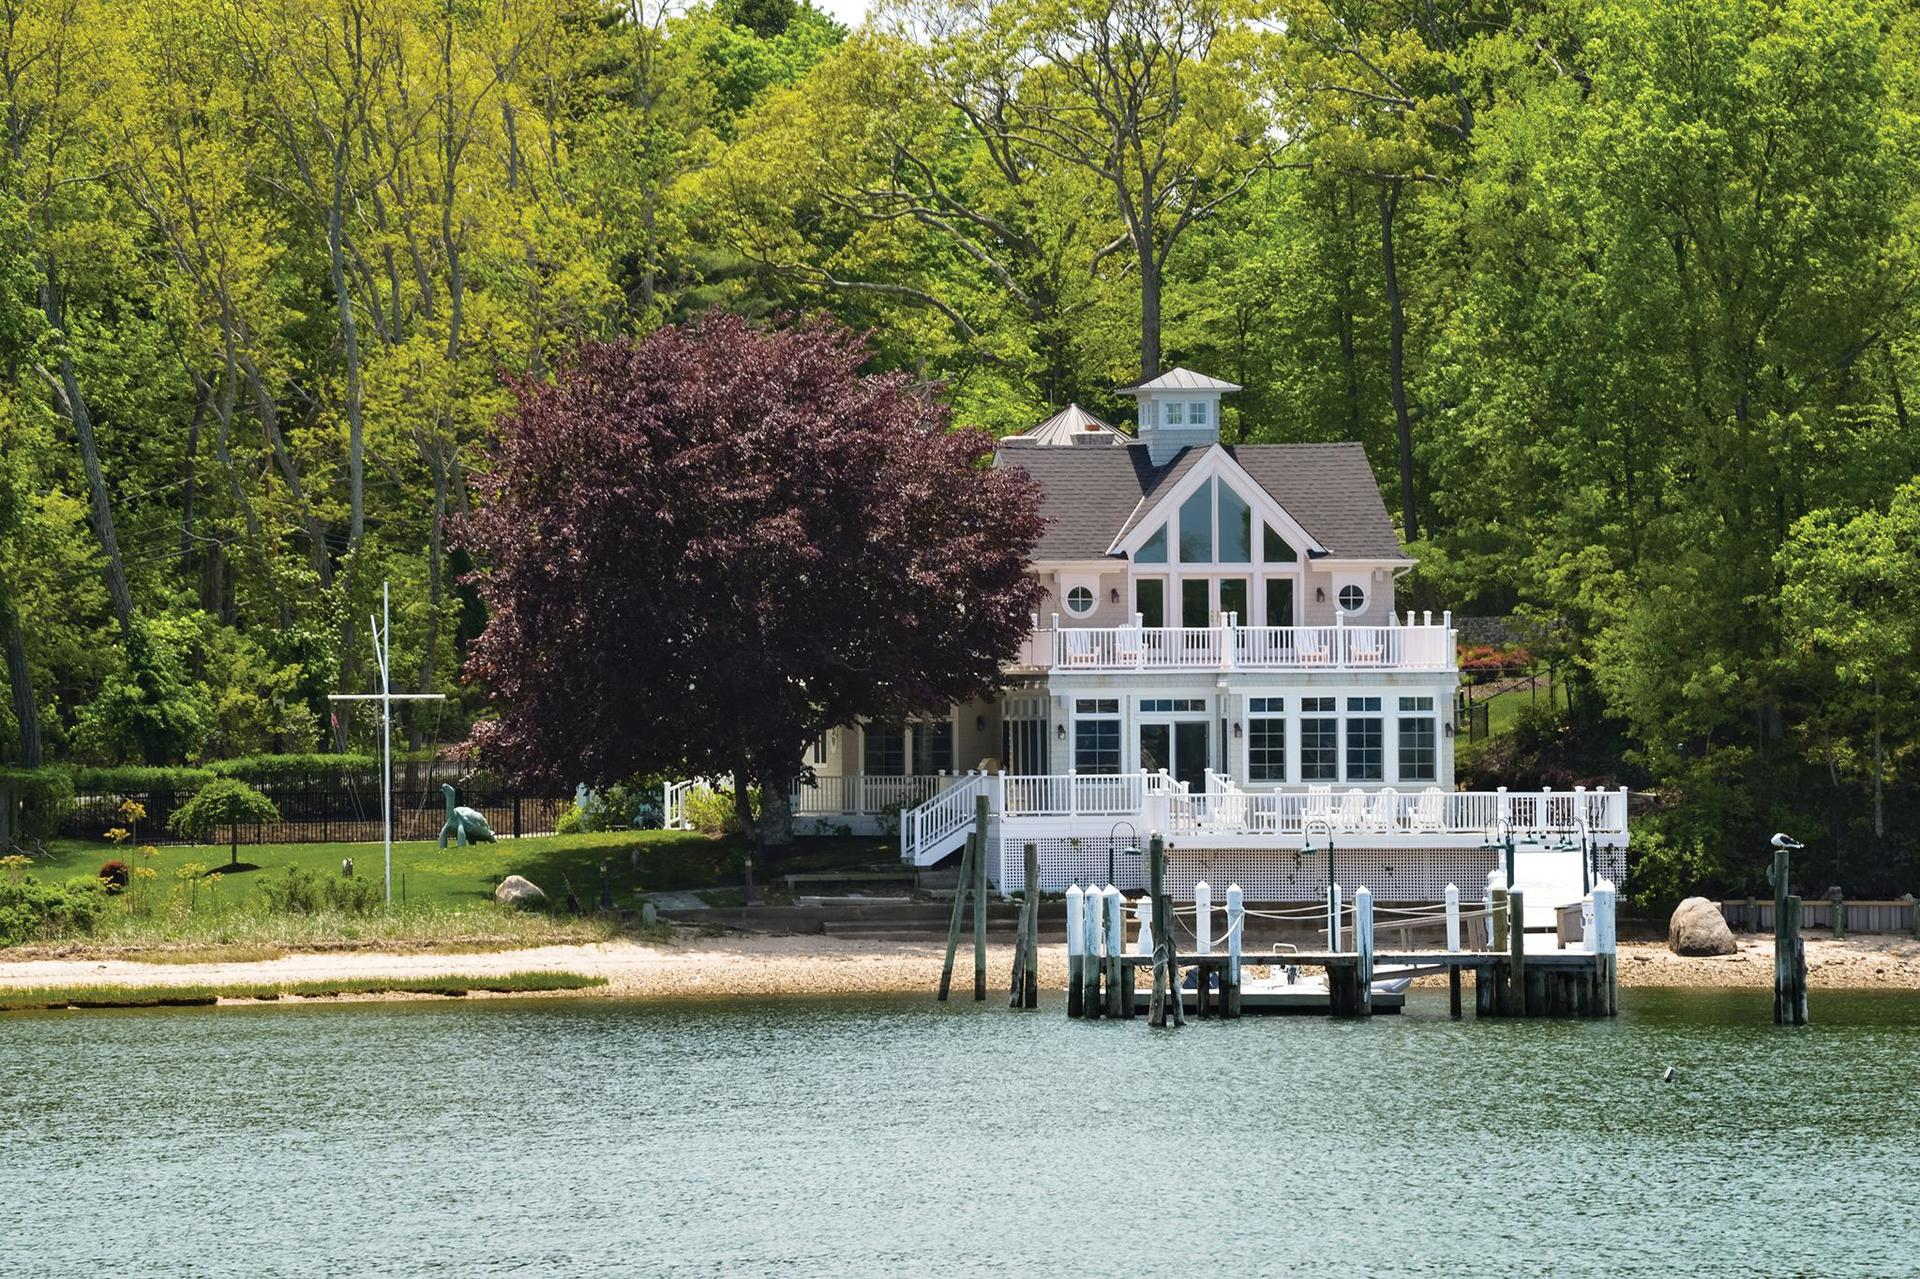 Casa Unifamiliar por un Alquiler en Exquisite Dering Harbor Waterfront With Deep Water Dock Shelter Island, Nueva York